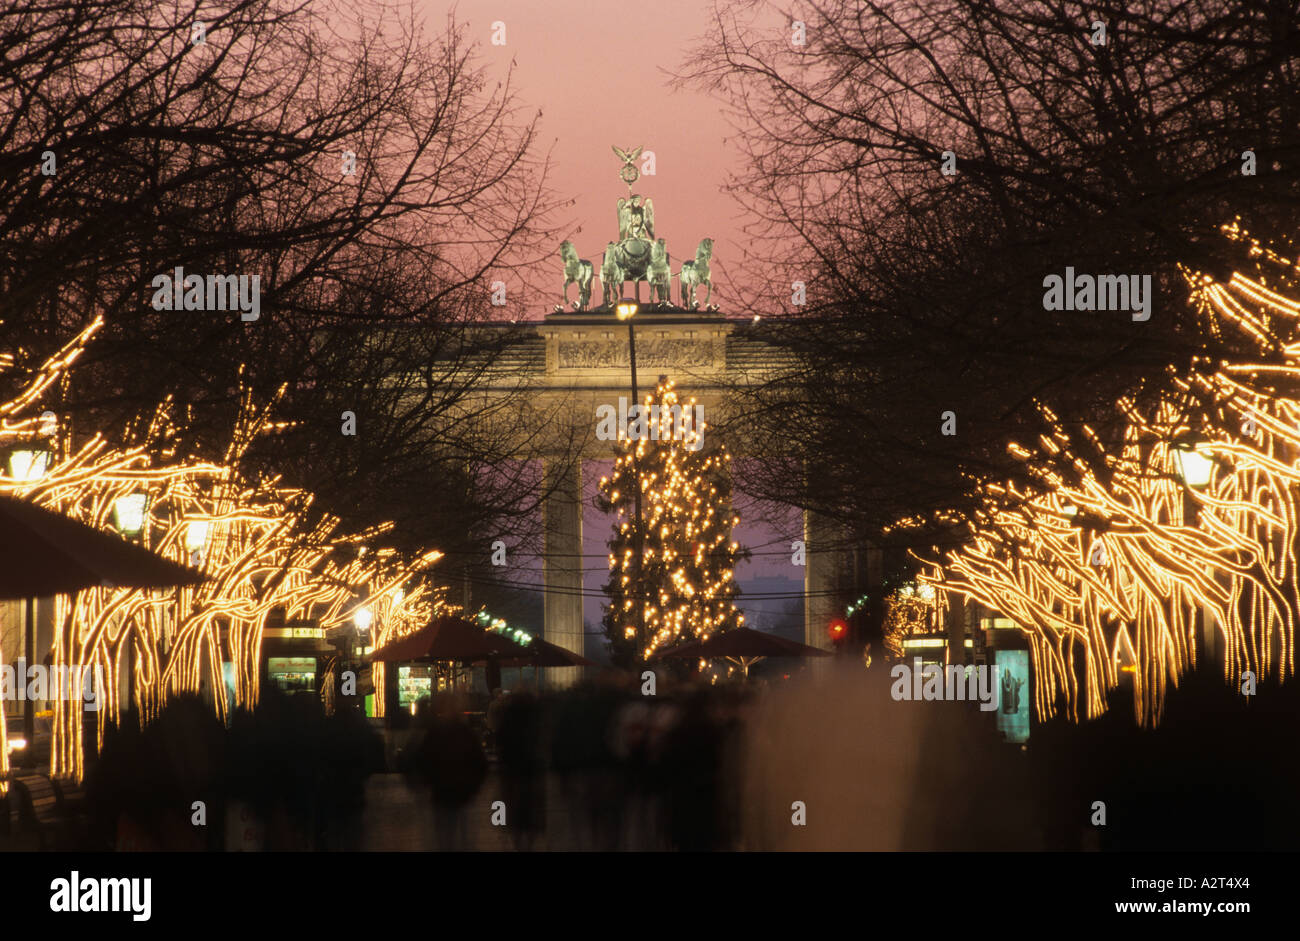 europa europe germany deutschland berlin brandenburger tor gate stock photo royalty free image. Black Bedroom Furniture Sets. Home Design Ideas